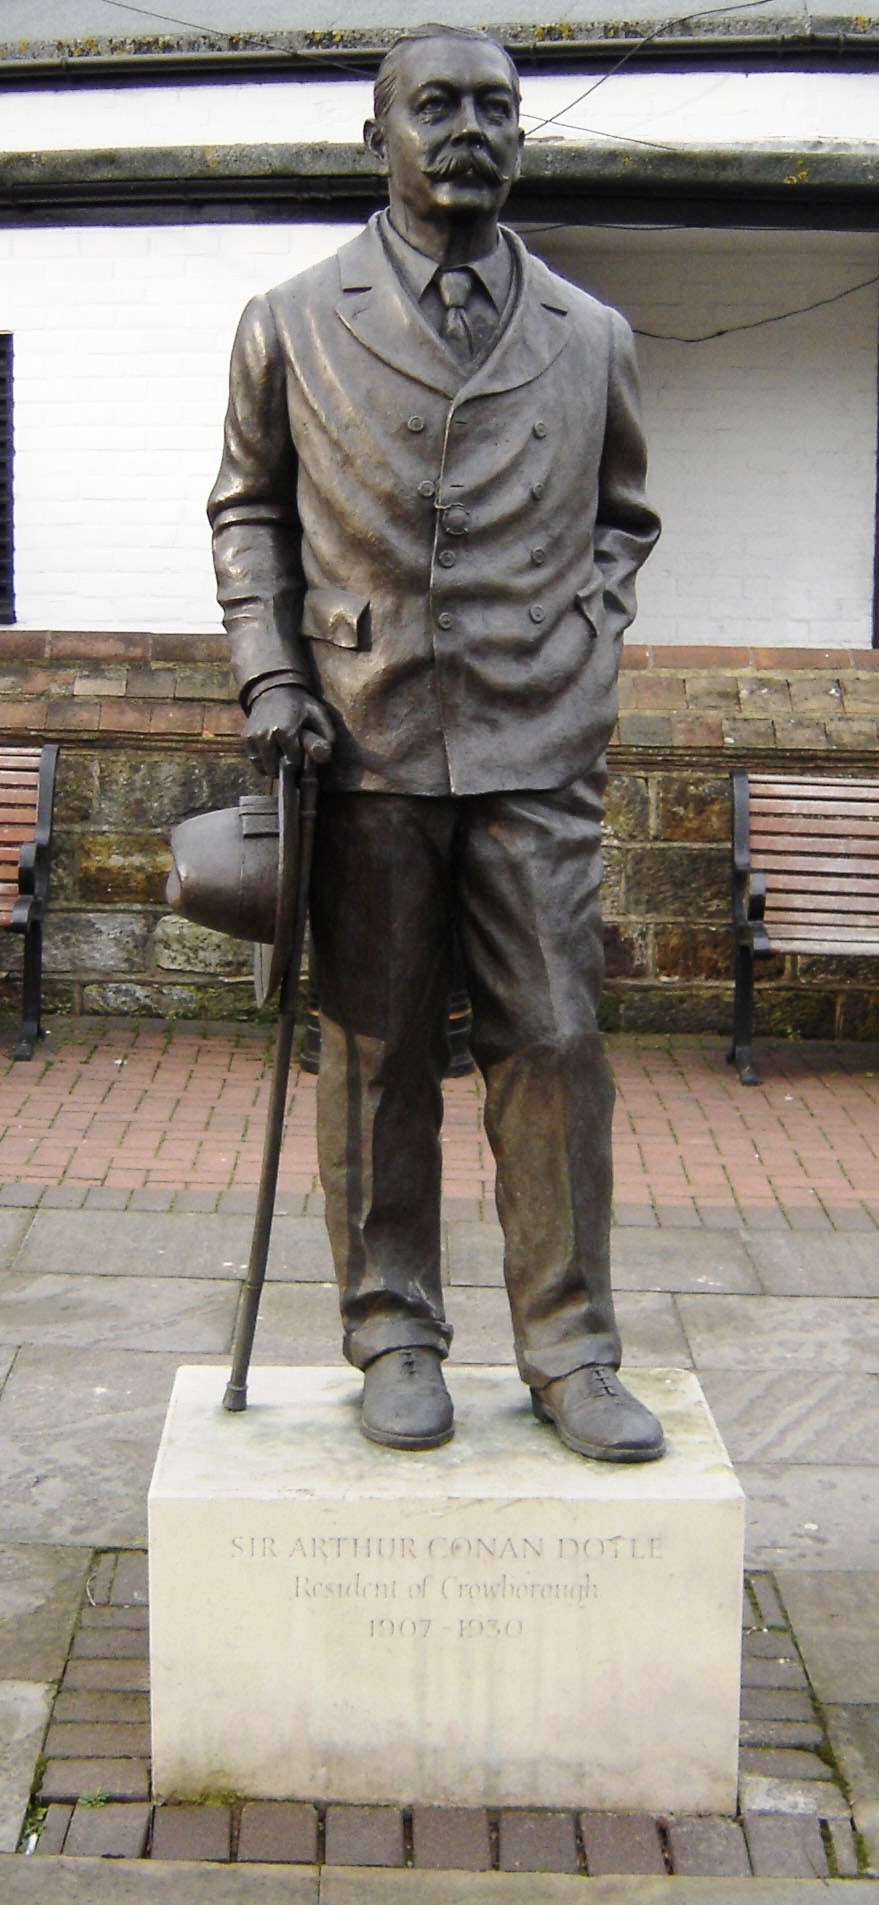 Doyle statue in Crowborough, East Sussex